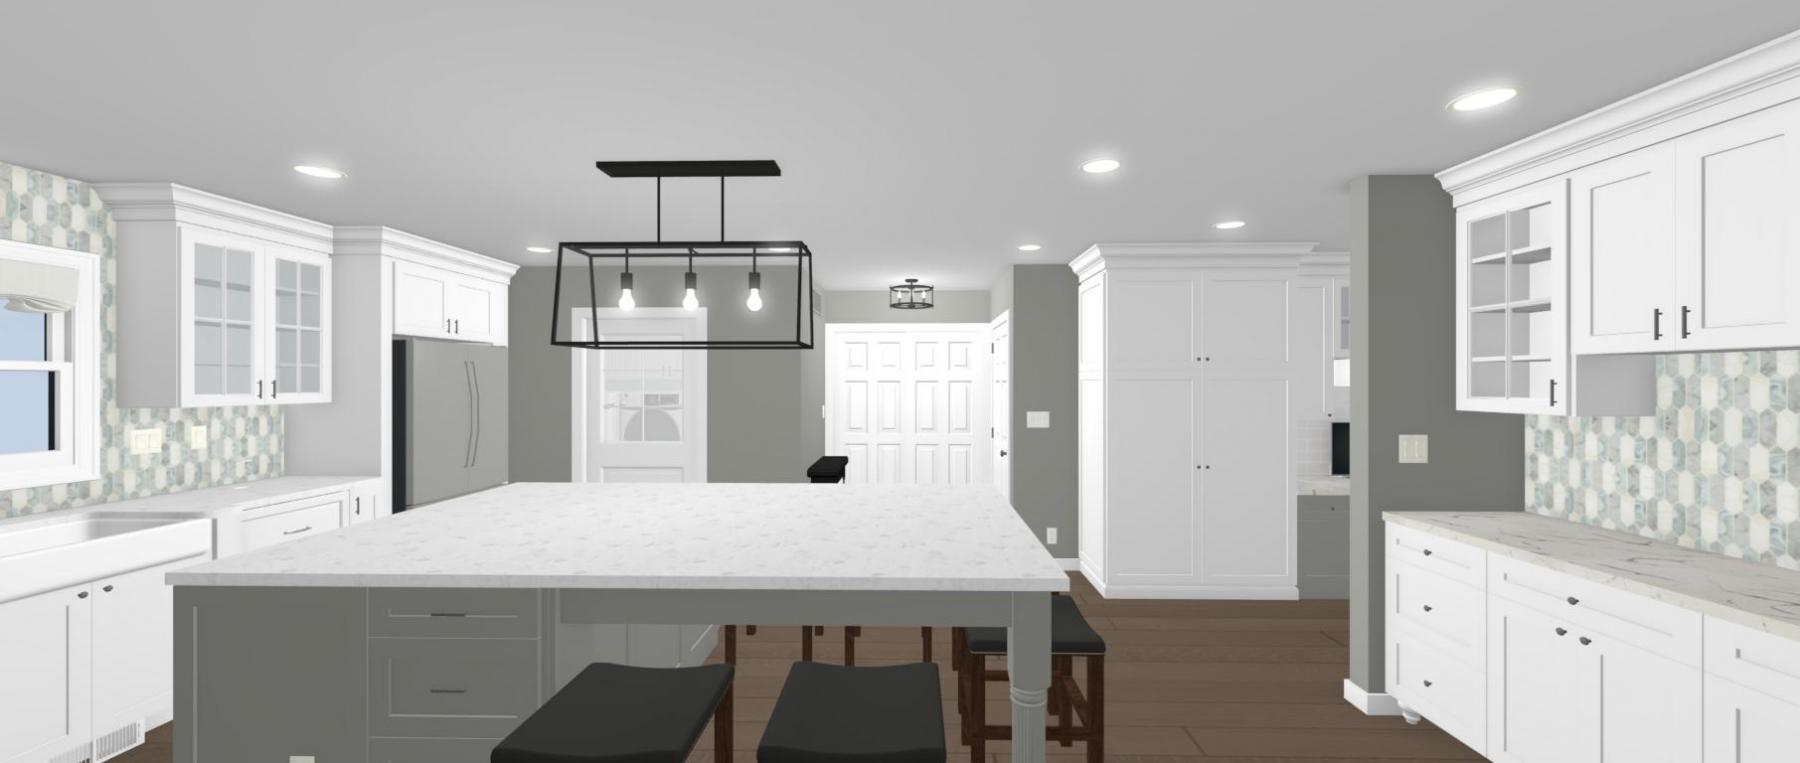 Kitchen with seating area